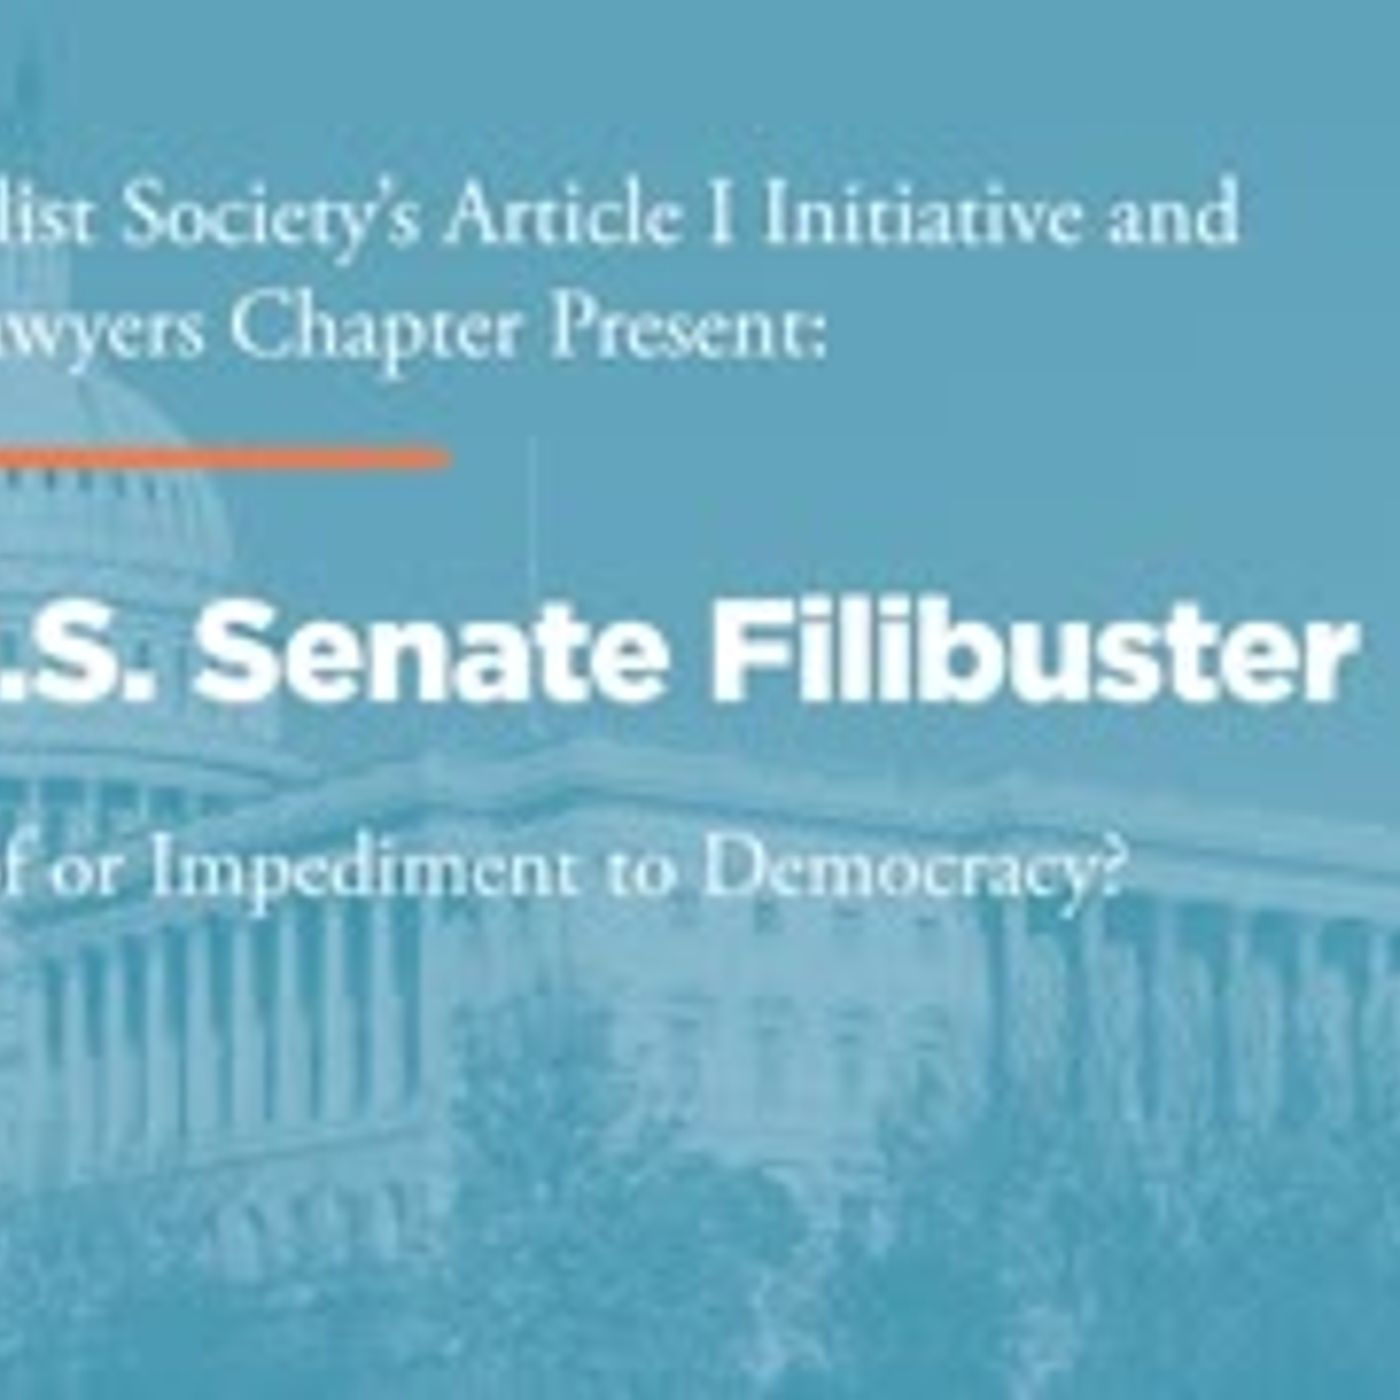 The U.S. Senate Filibuster: A Feature of or Impediment to Democracy?